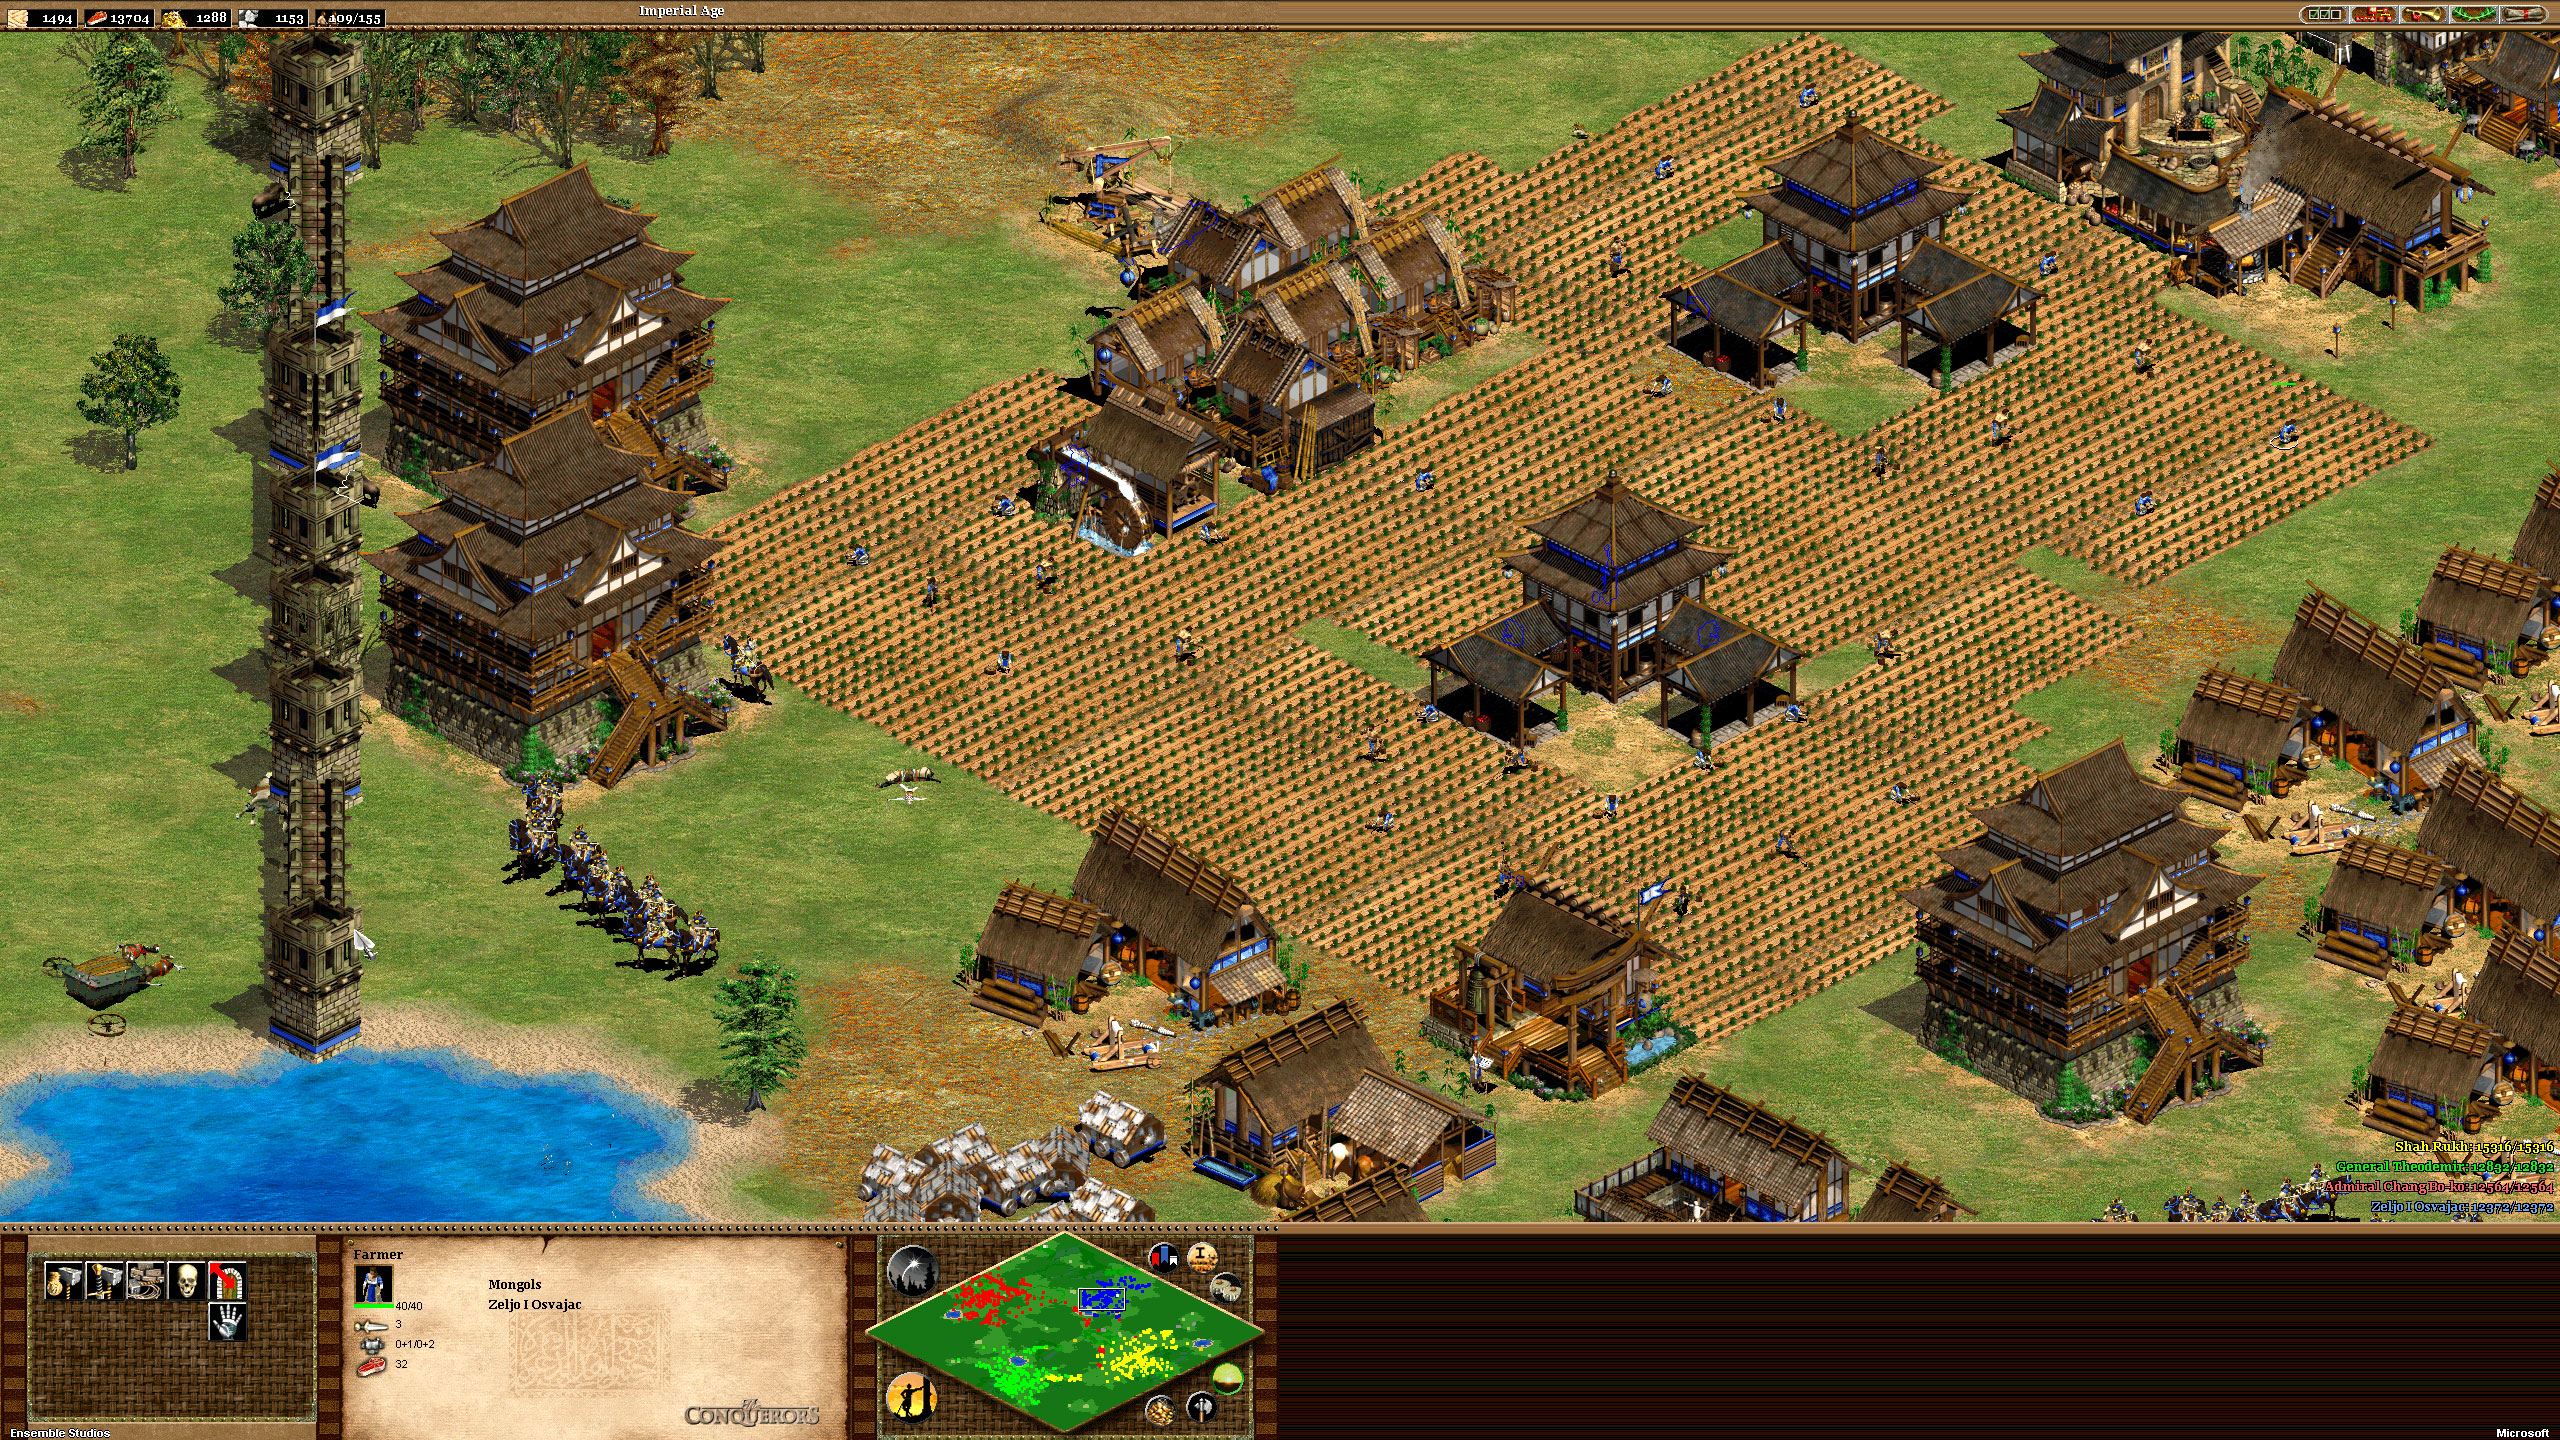 Age of empires 2 hd screen resolution patch